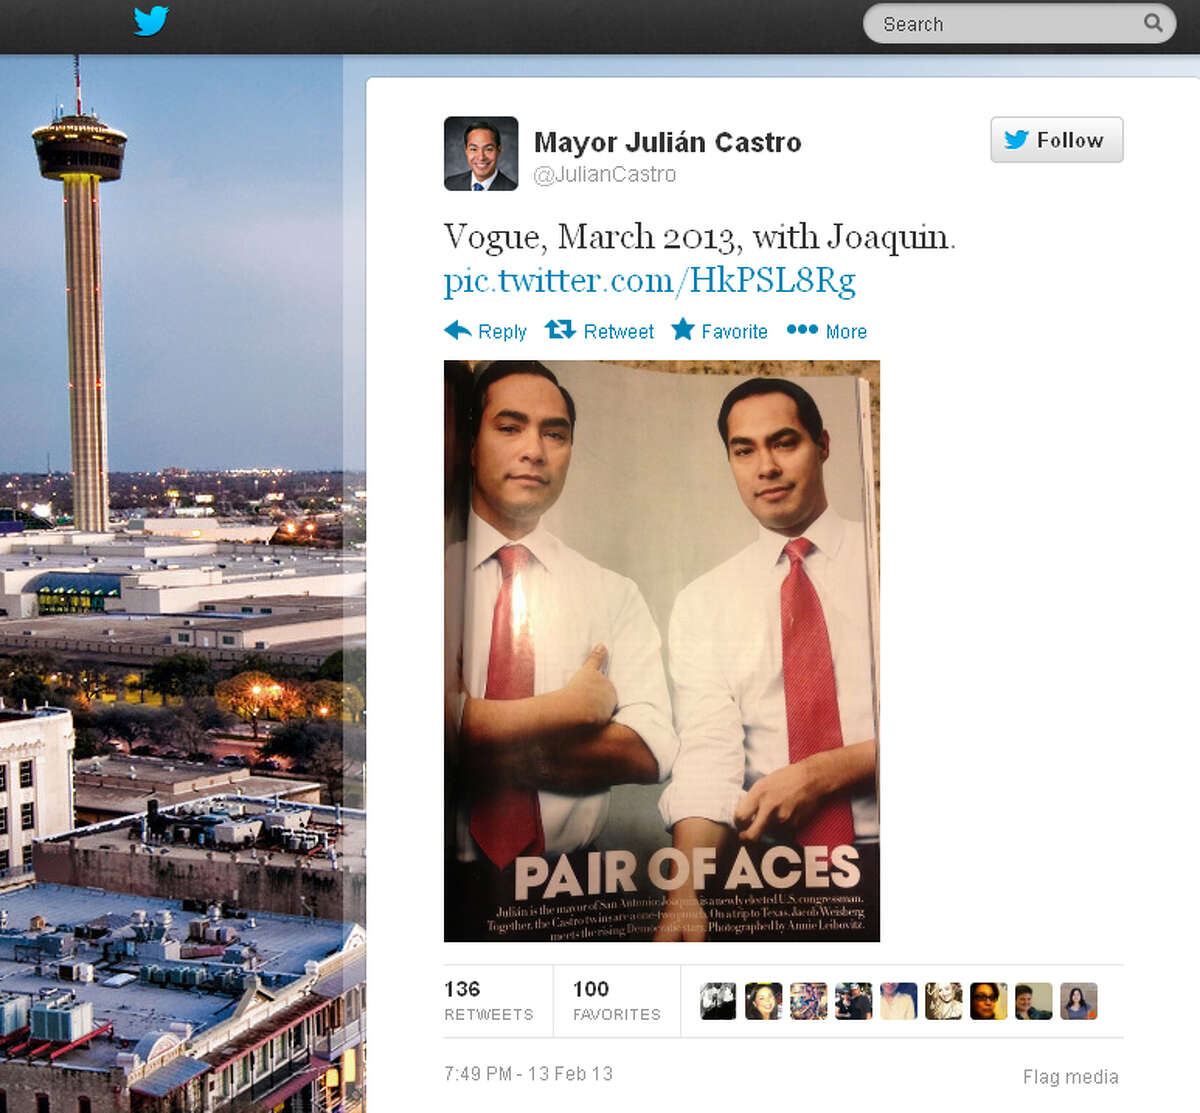 Mayor Julián Castro tweeted a snapshot of the story featuring him and brother Joaquin in the March 2013 edition of Vogue magazine.